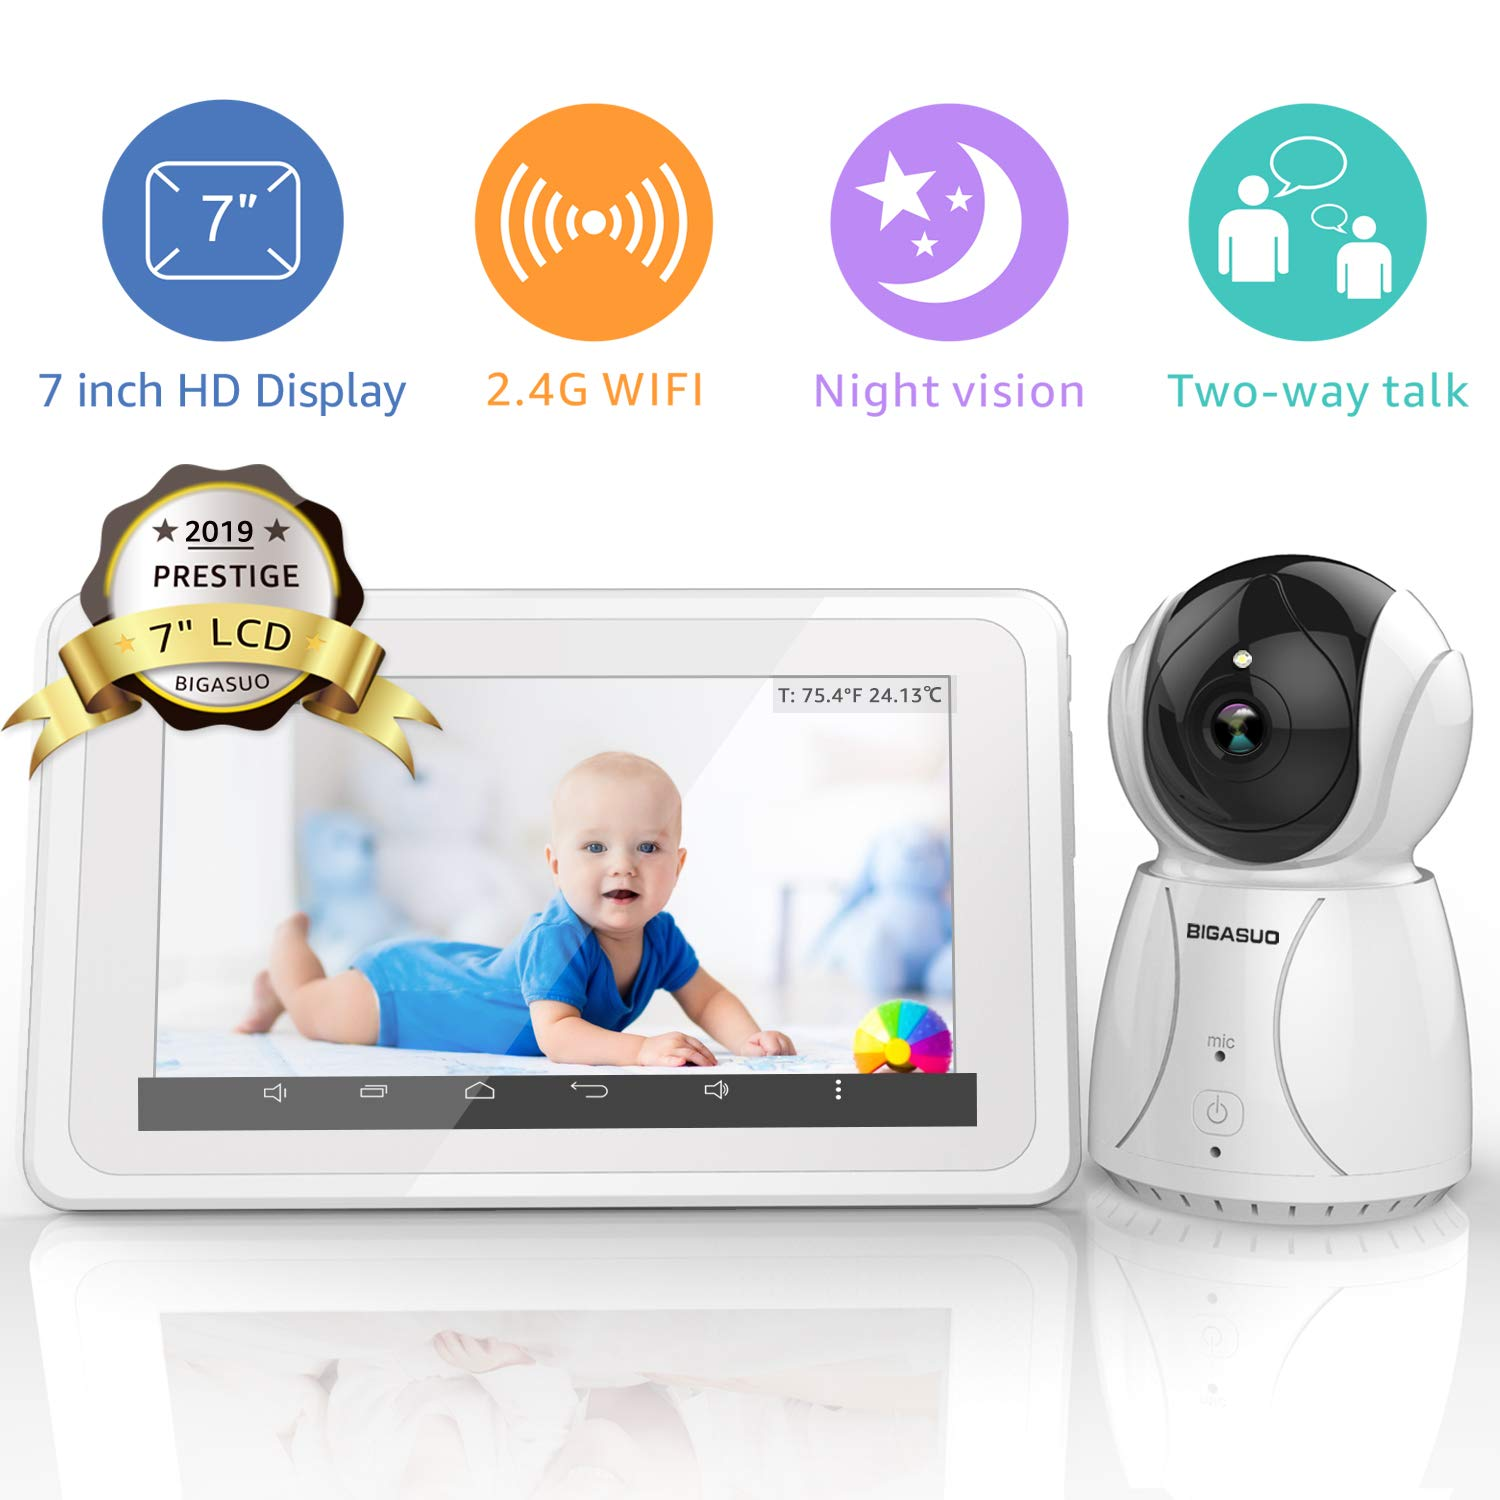 """BIGASUO Video Baby Monitor with Camera Wireless Digital 720P 7"""" HD LCD Screen, Two Way Talk,5 Baby Lullabies, Sound & Movement Alarm, Night Vision,Temperature Alert with WiFi 2019 Upgrade"""